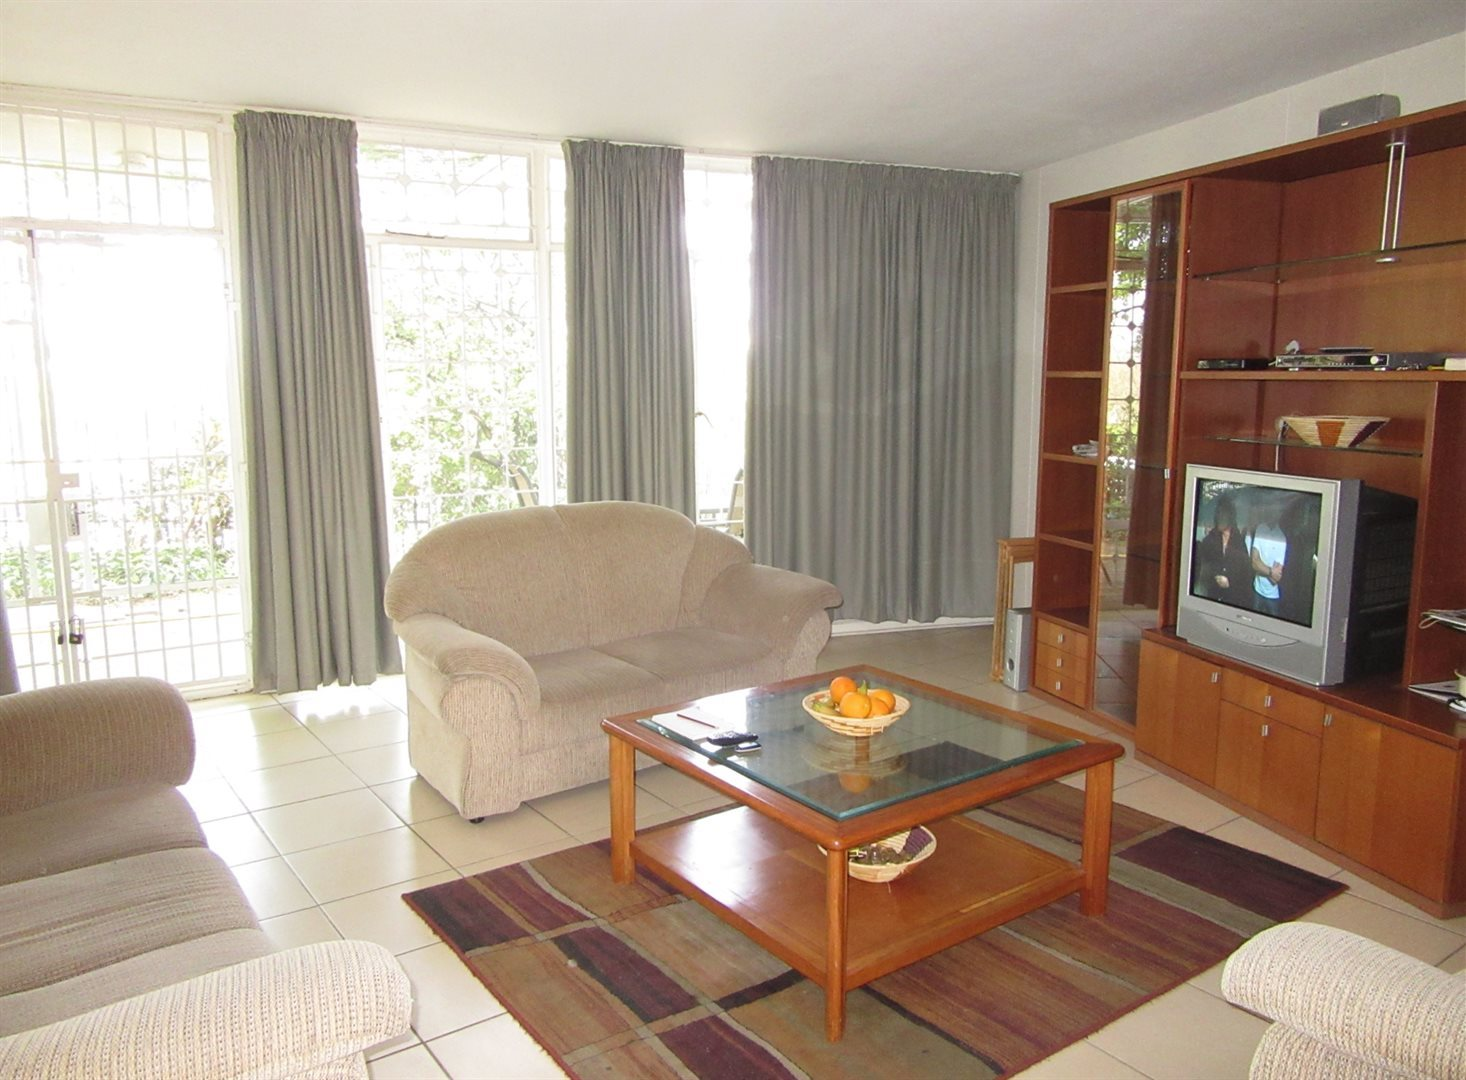 Bryanston East property for sale. Ref No: 13533607. Picture no 1